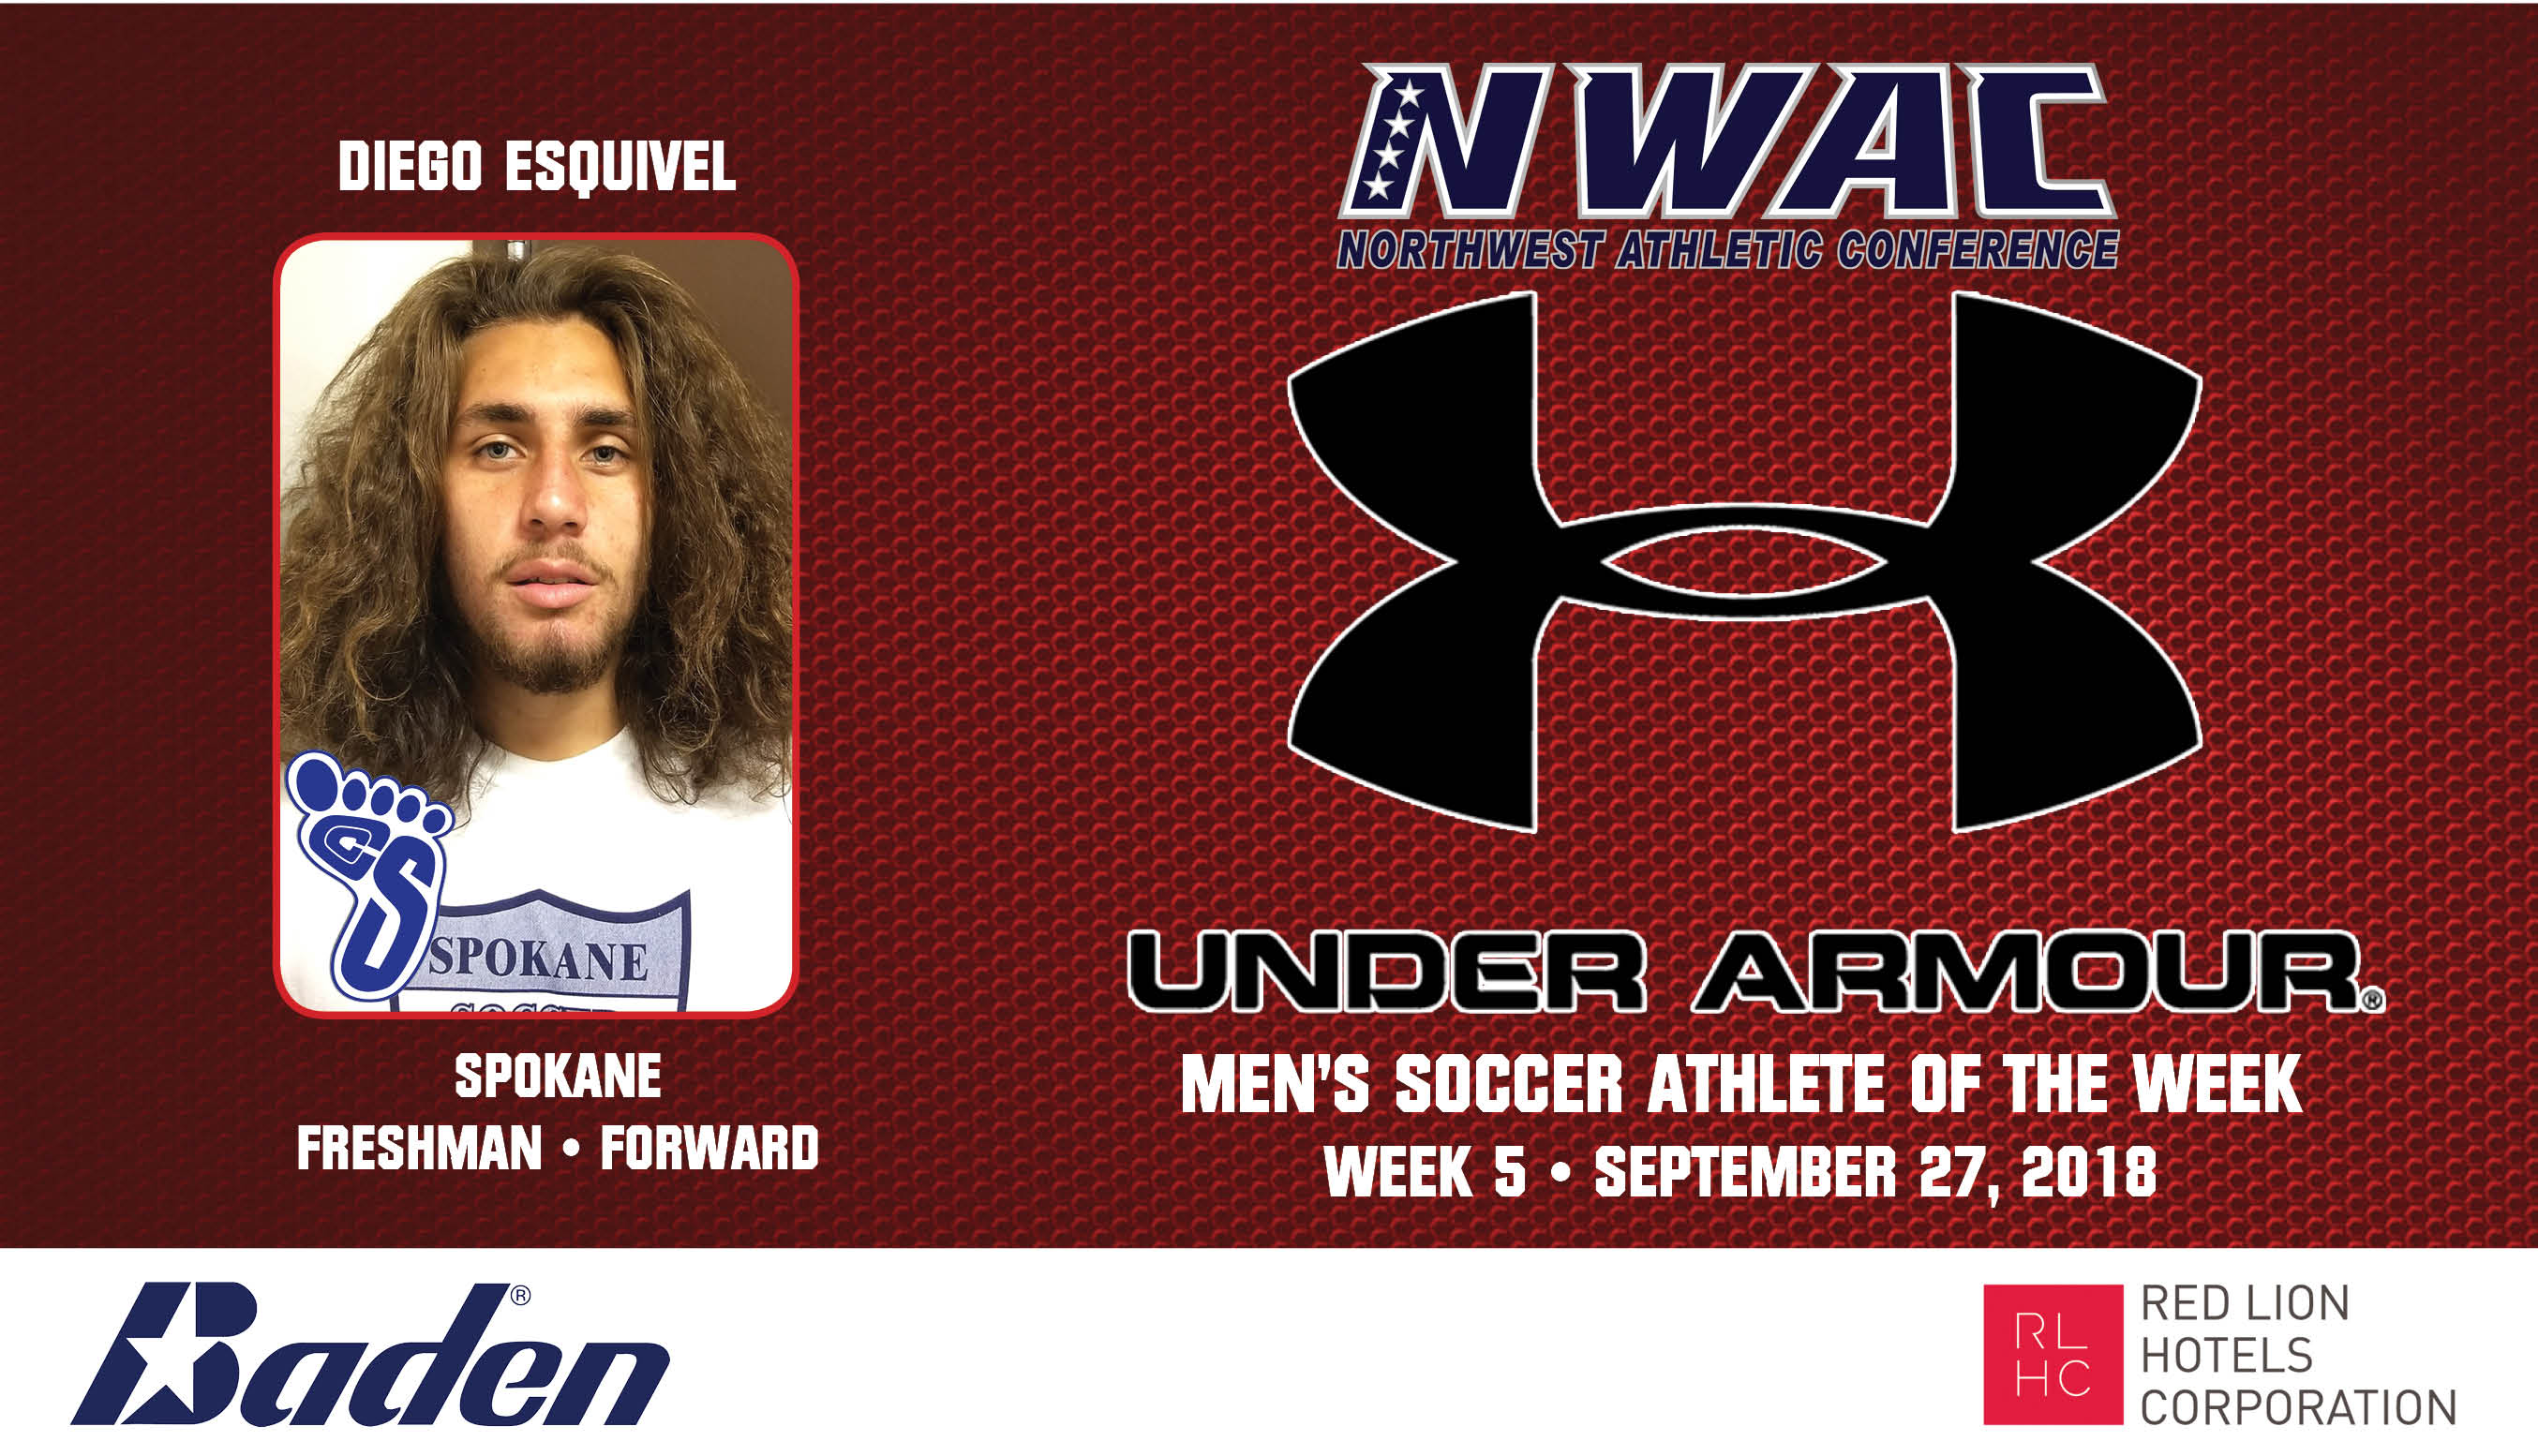 Diego Esquivel Armour Player of the Week graphic